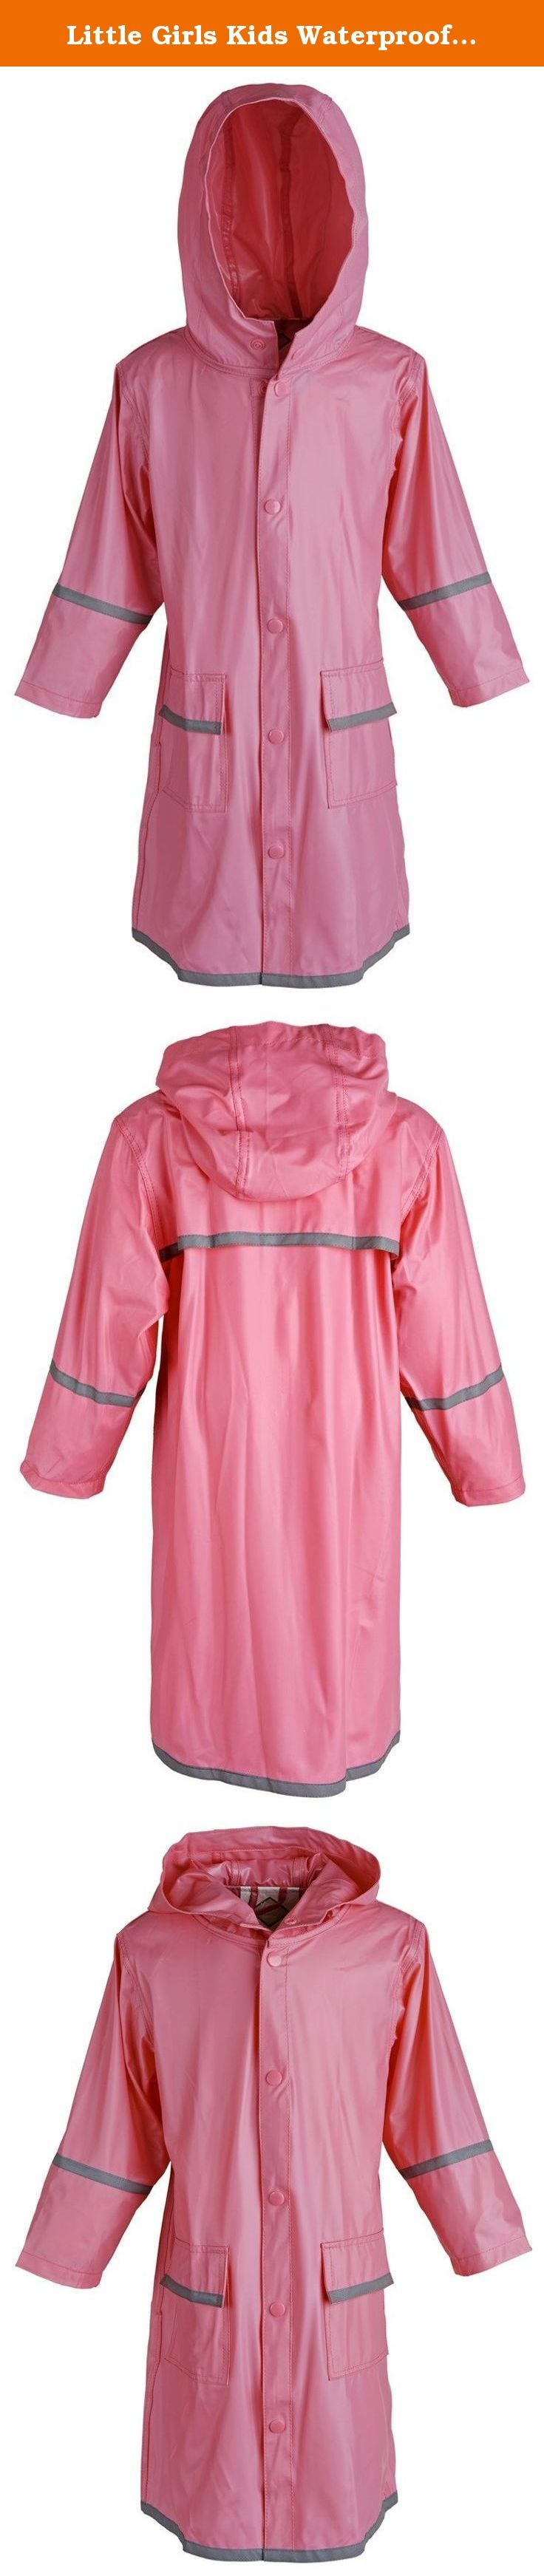 Little Girls Kids Waterproof Full Length Long Hooded Childrens Raincoat Jacket - Pink (X-Small). Keep her dry with this durable waterproof raincoat. Additional protection is added by the hood and full length. Reflector strips on back, sleeves, and bottom ensure your child's safety in the dark. Available in sizes XX-Small (2) to XX-Large (18) (for other size ranges, please see our storefront).